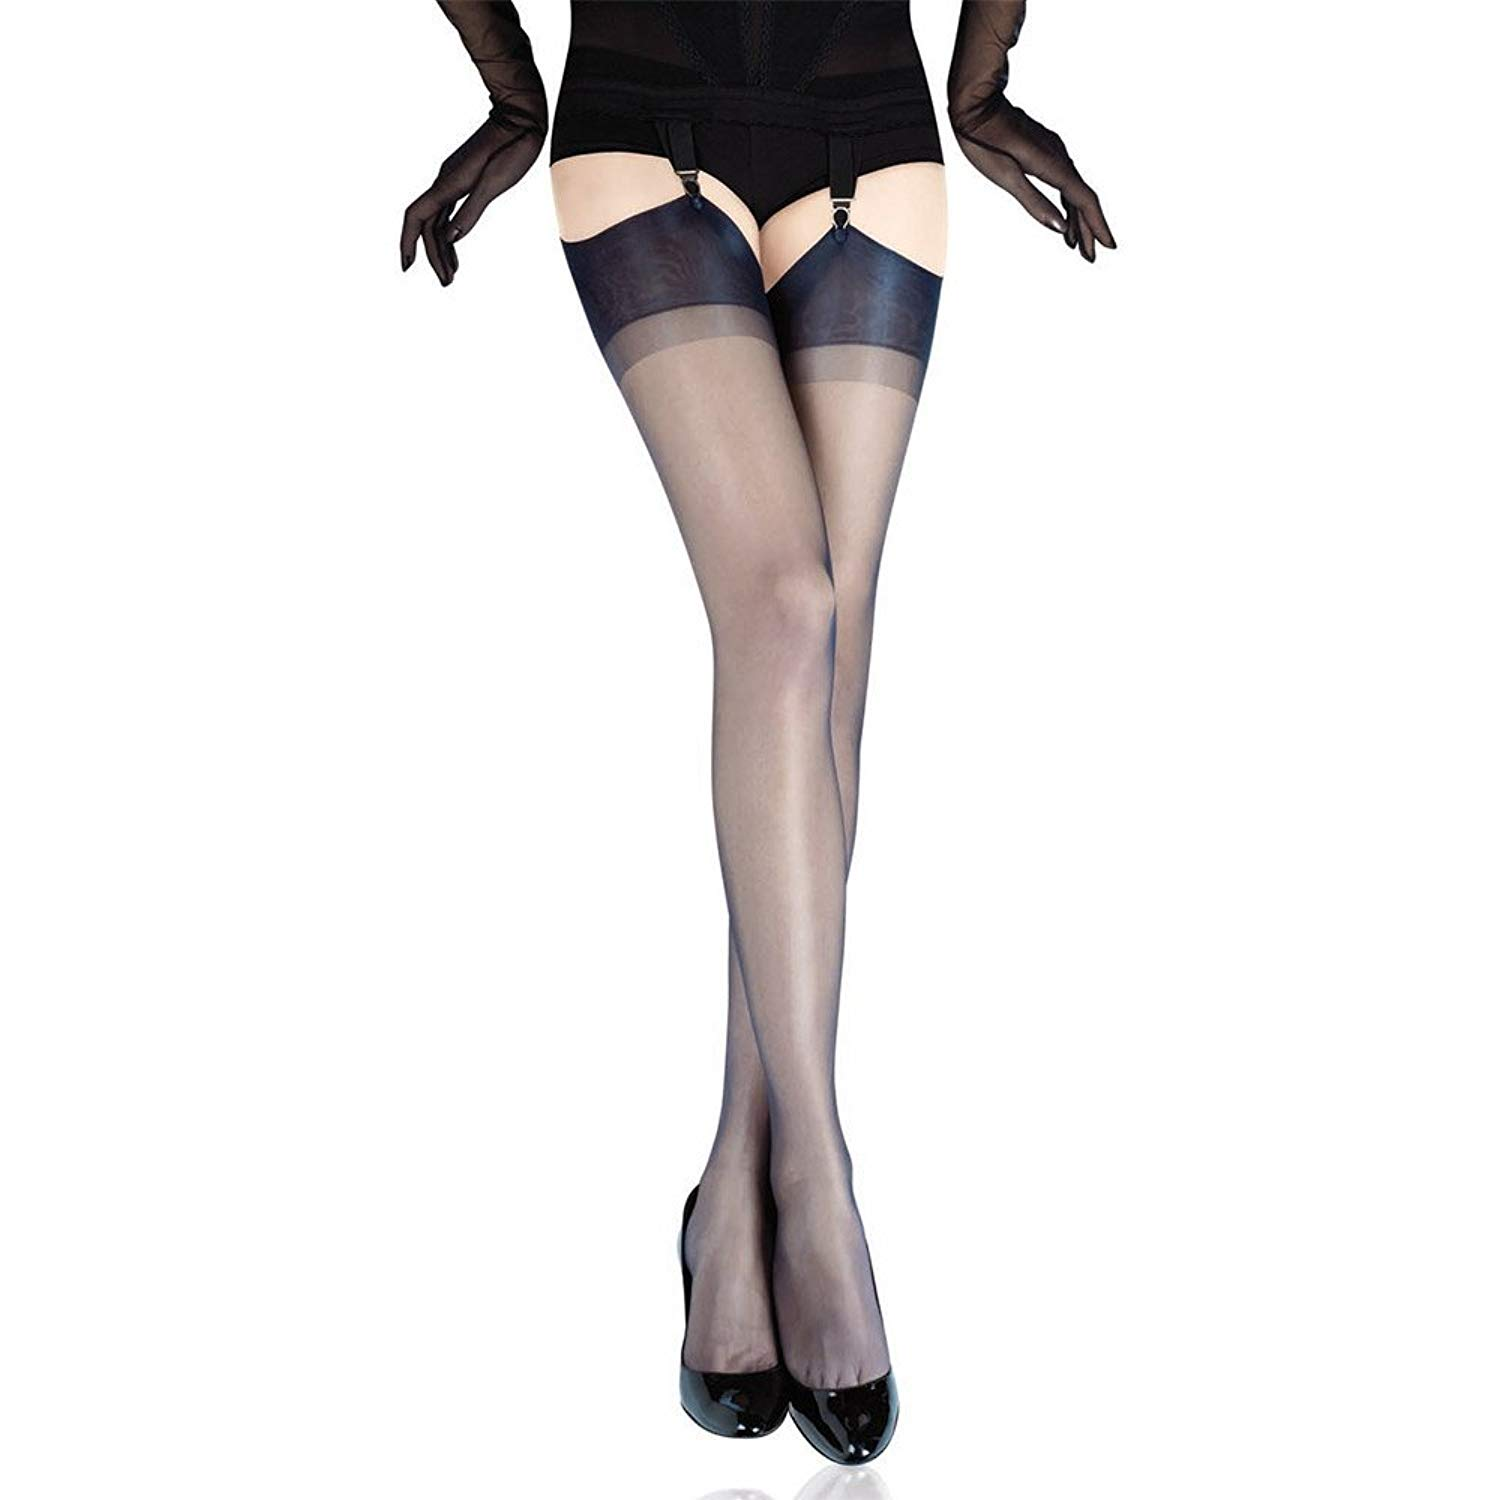 d28668fbe7aa6 Buy Gio Women's RHT stockings - FULL CONTRAST in Cheap Price on  m.alibaba.com